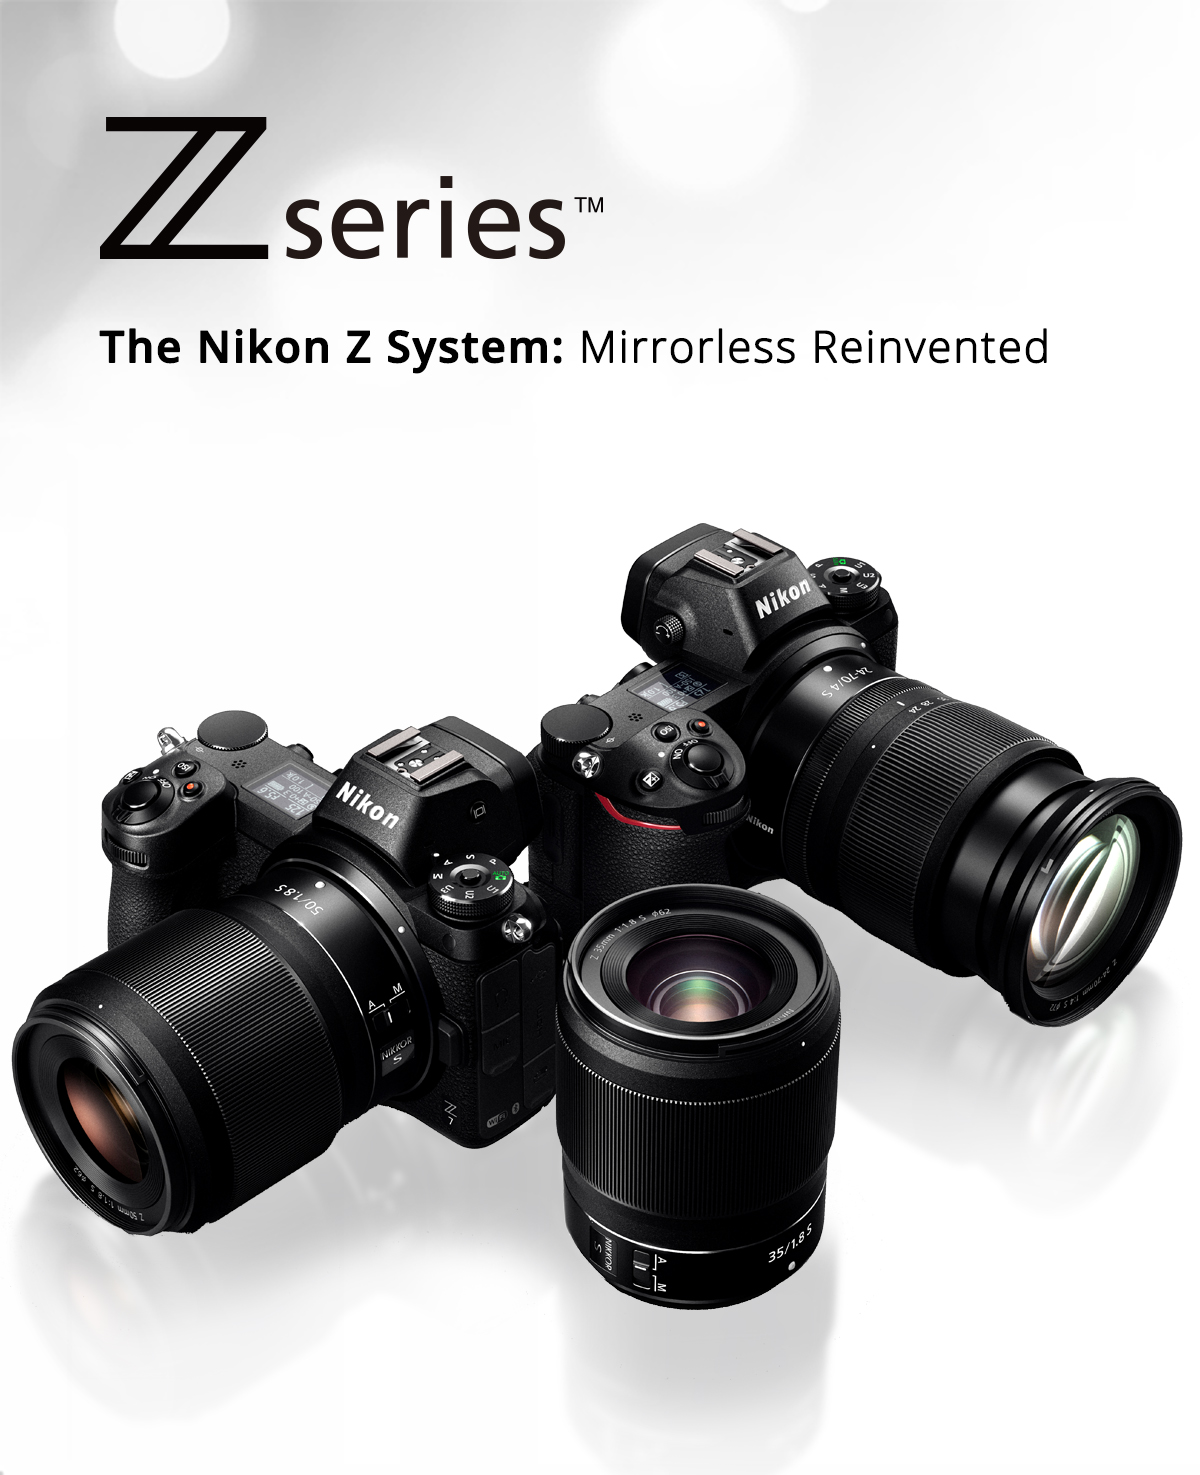 Nikon Press Room | Press Releases from Nikon